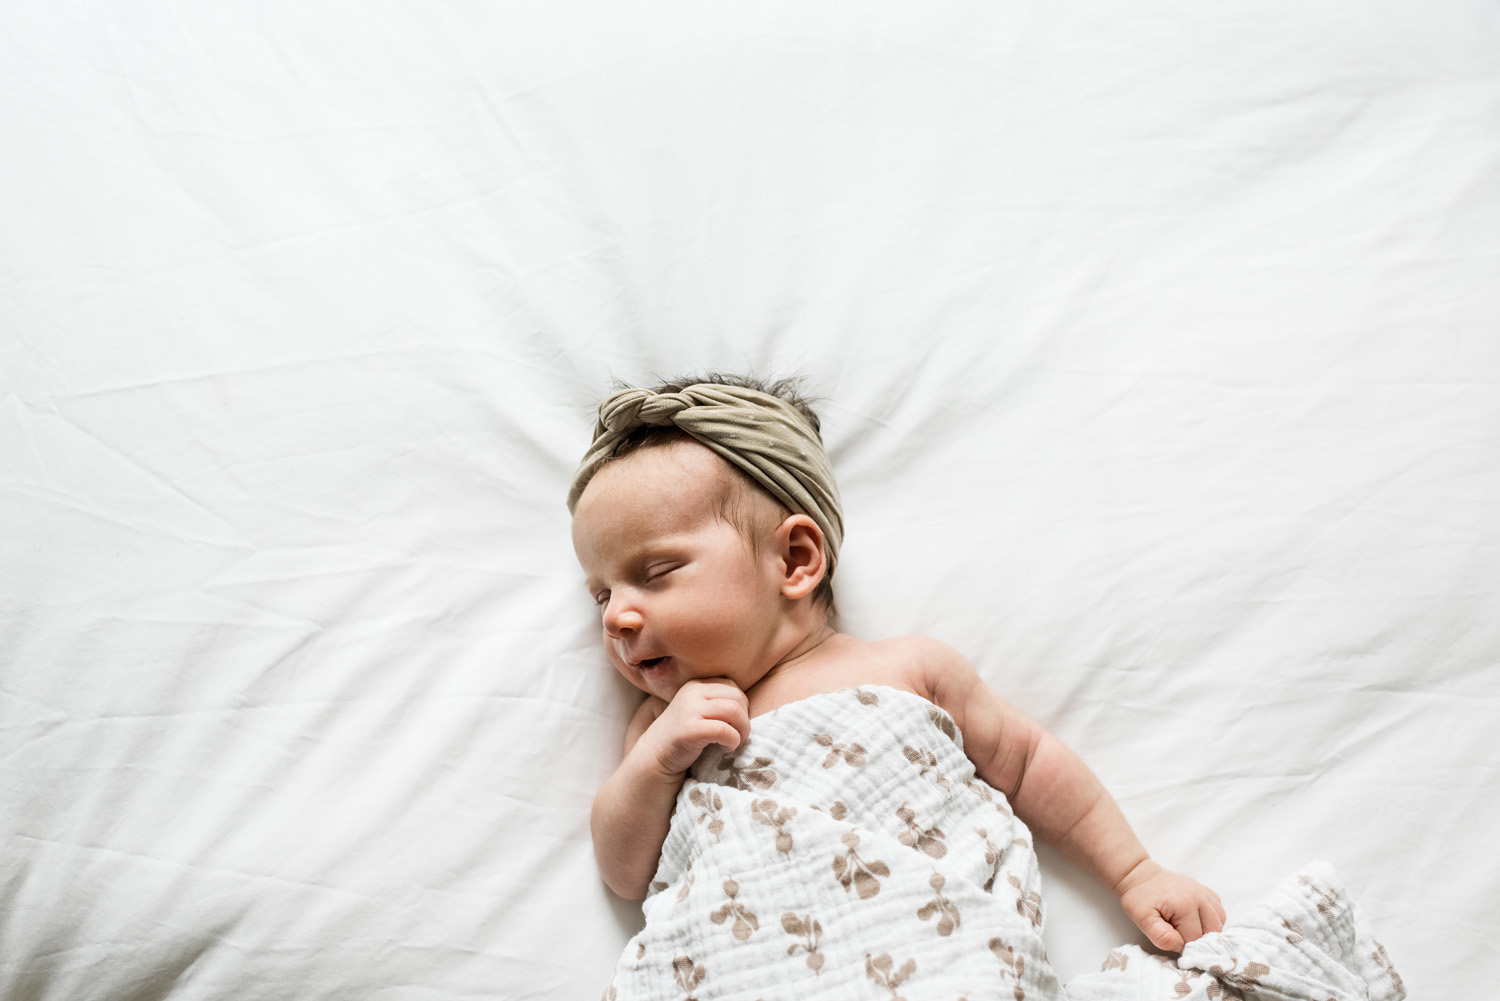 Brooklyn Heights Newborn_20190531_049.jpg